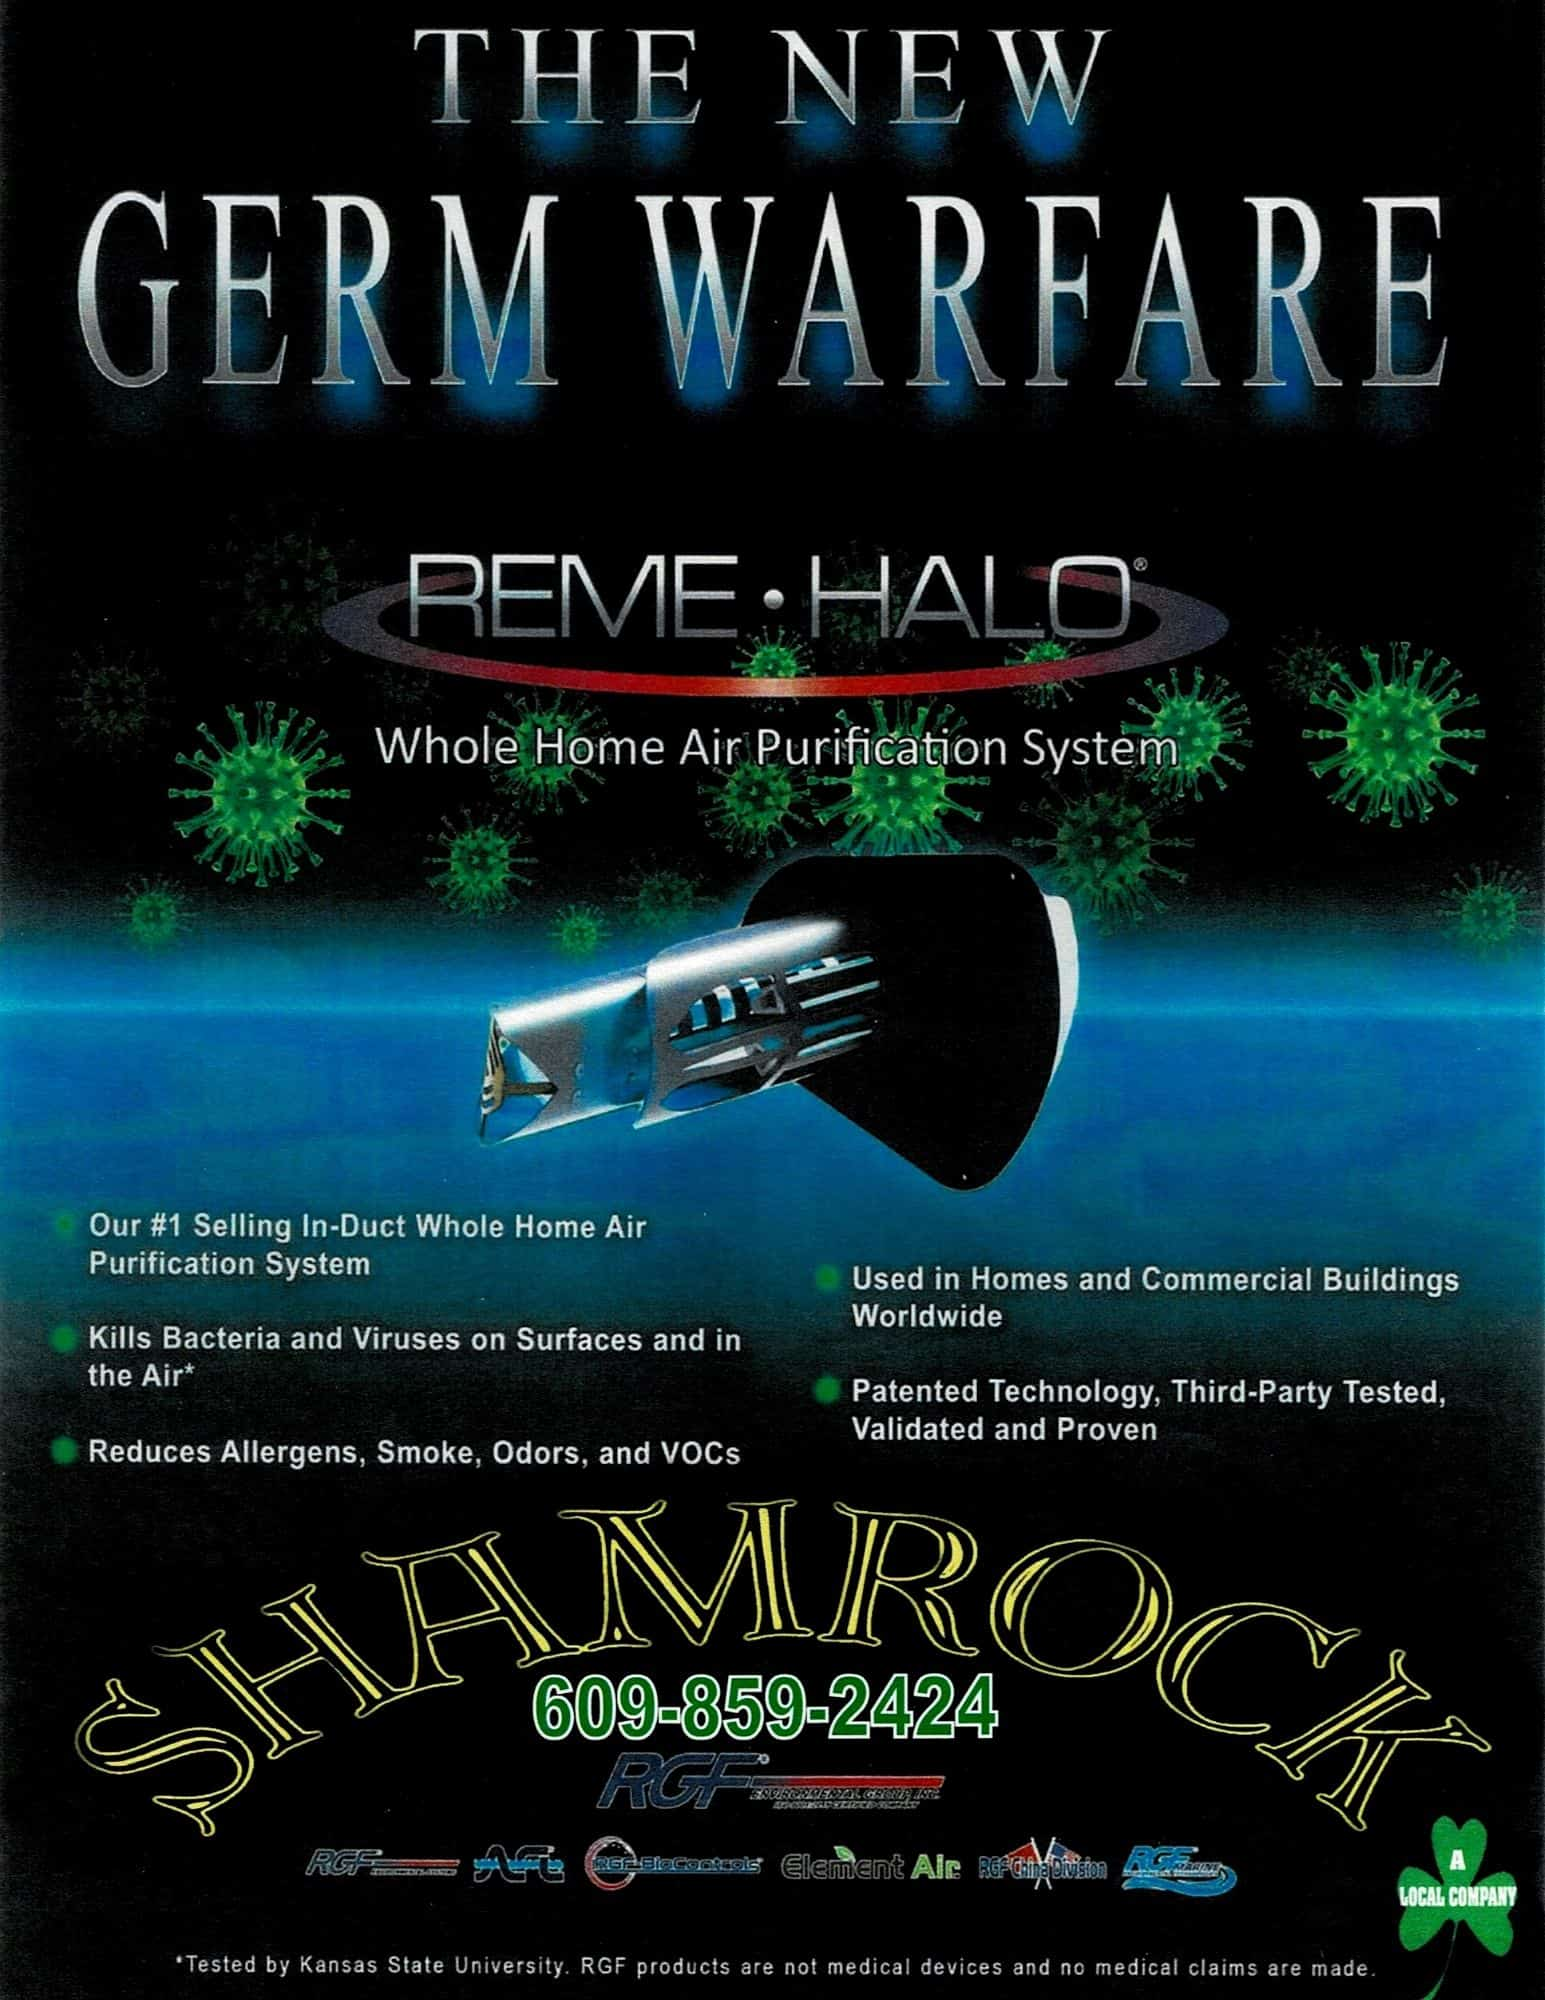 Reme Halo Air purification system flier for Shamrock Heating and Air Conditioning in Vincentown, NJ